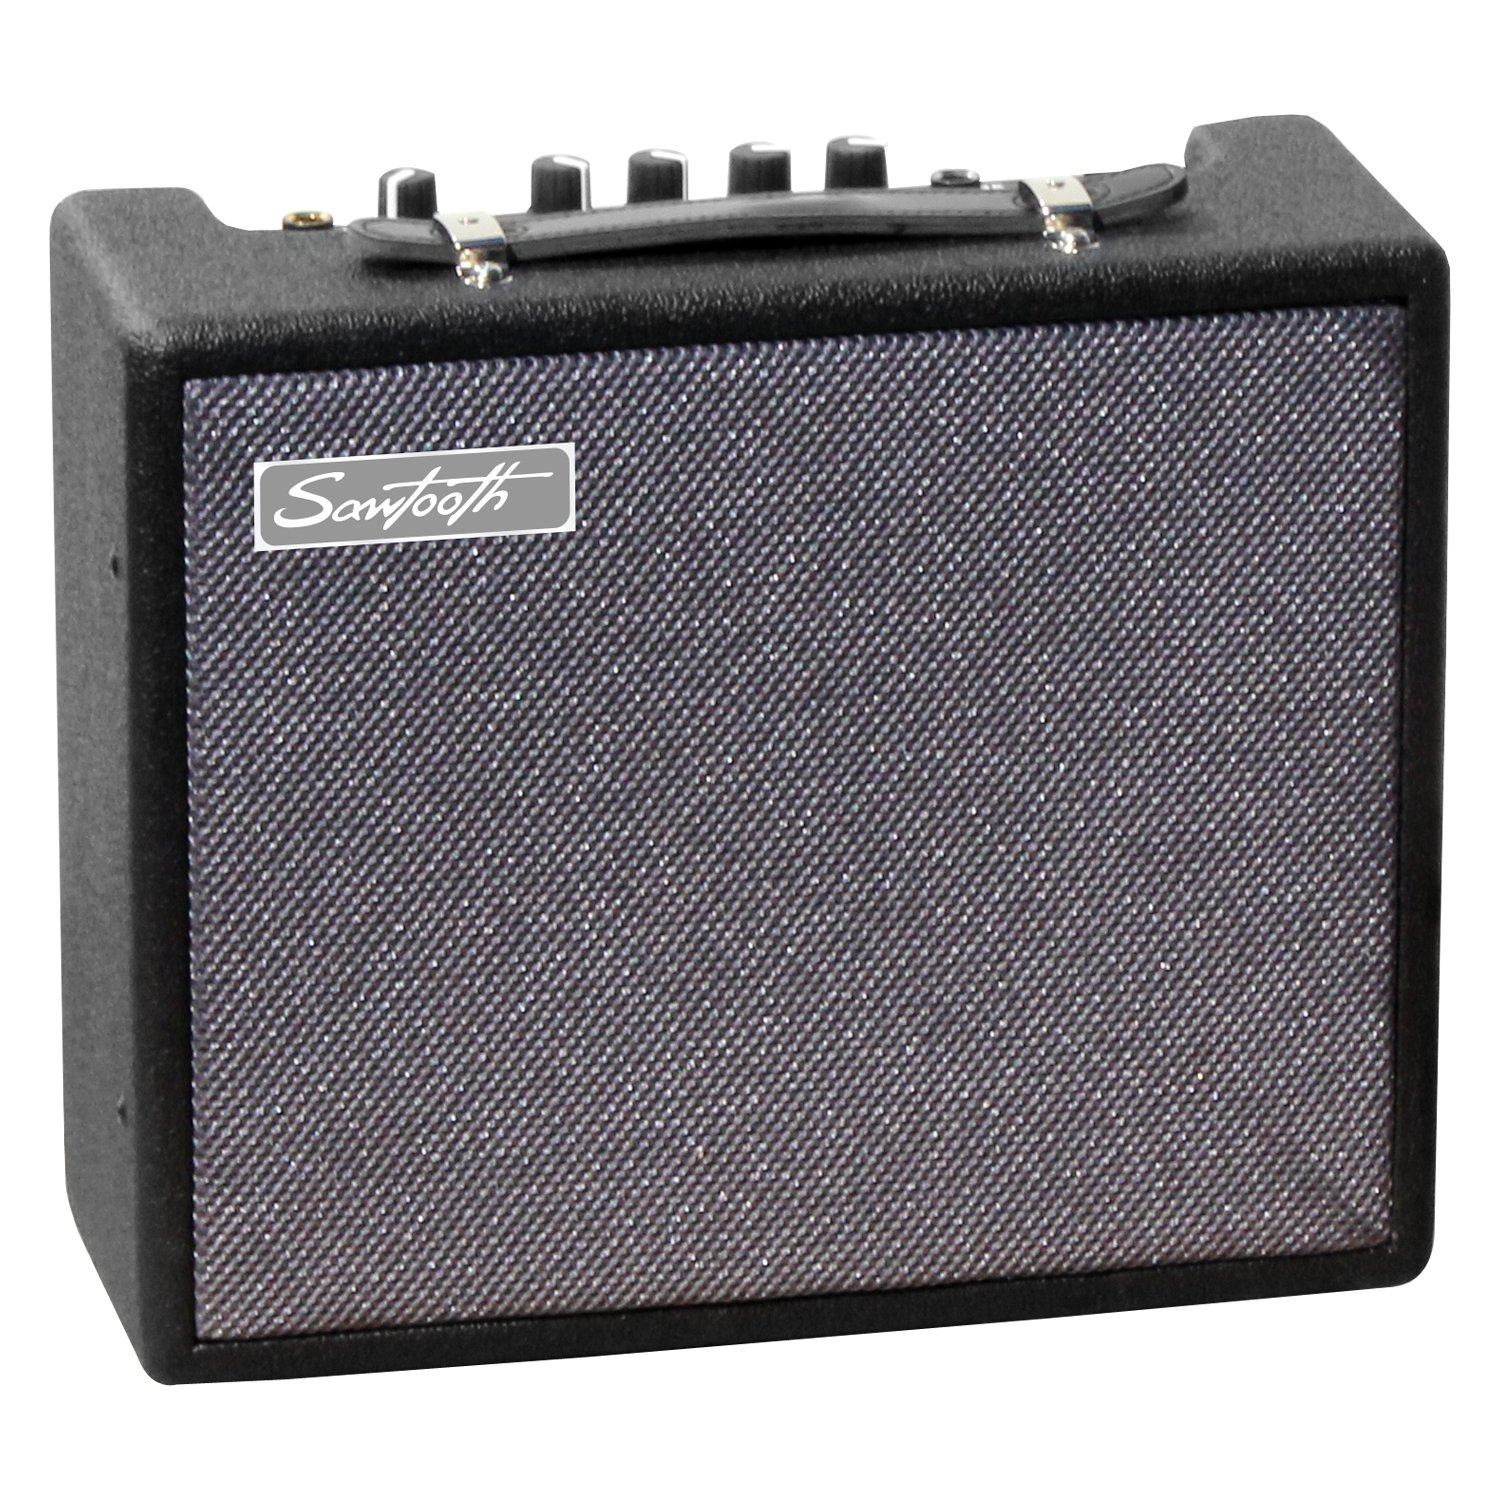 Sawtooth 10-Watt Electric Guitar Amplifier ST-AMP-10